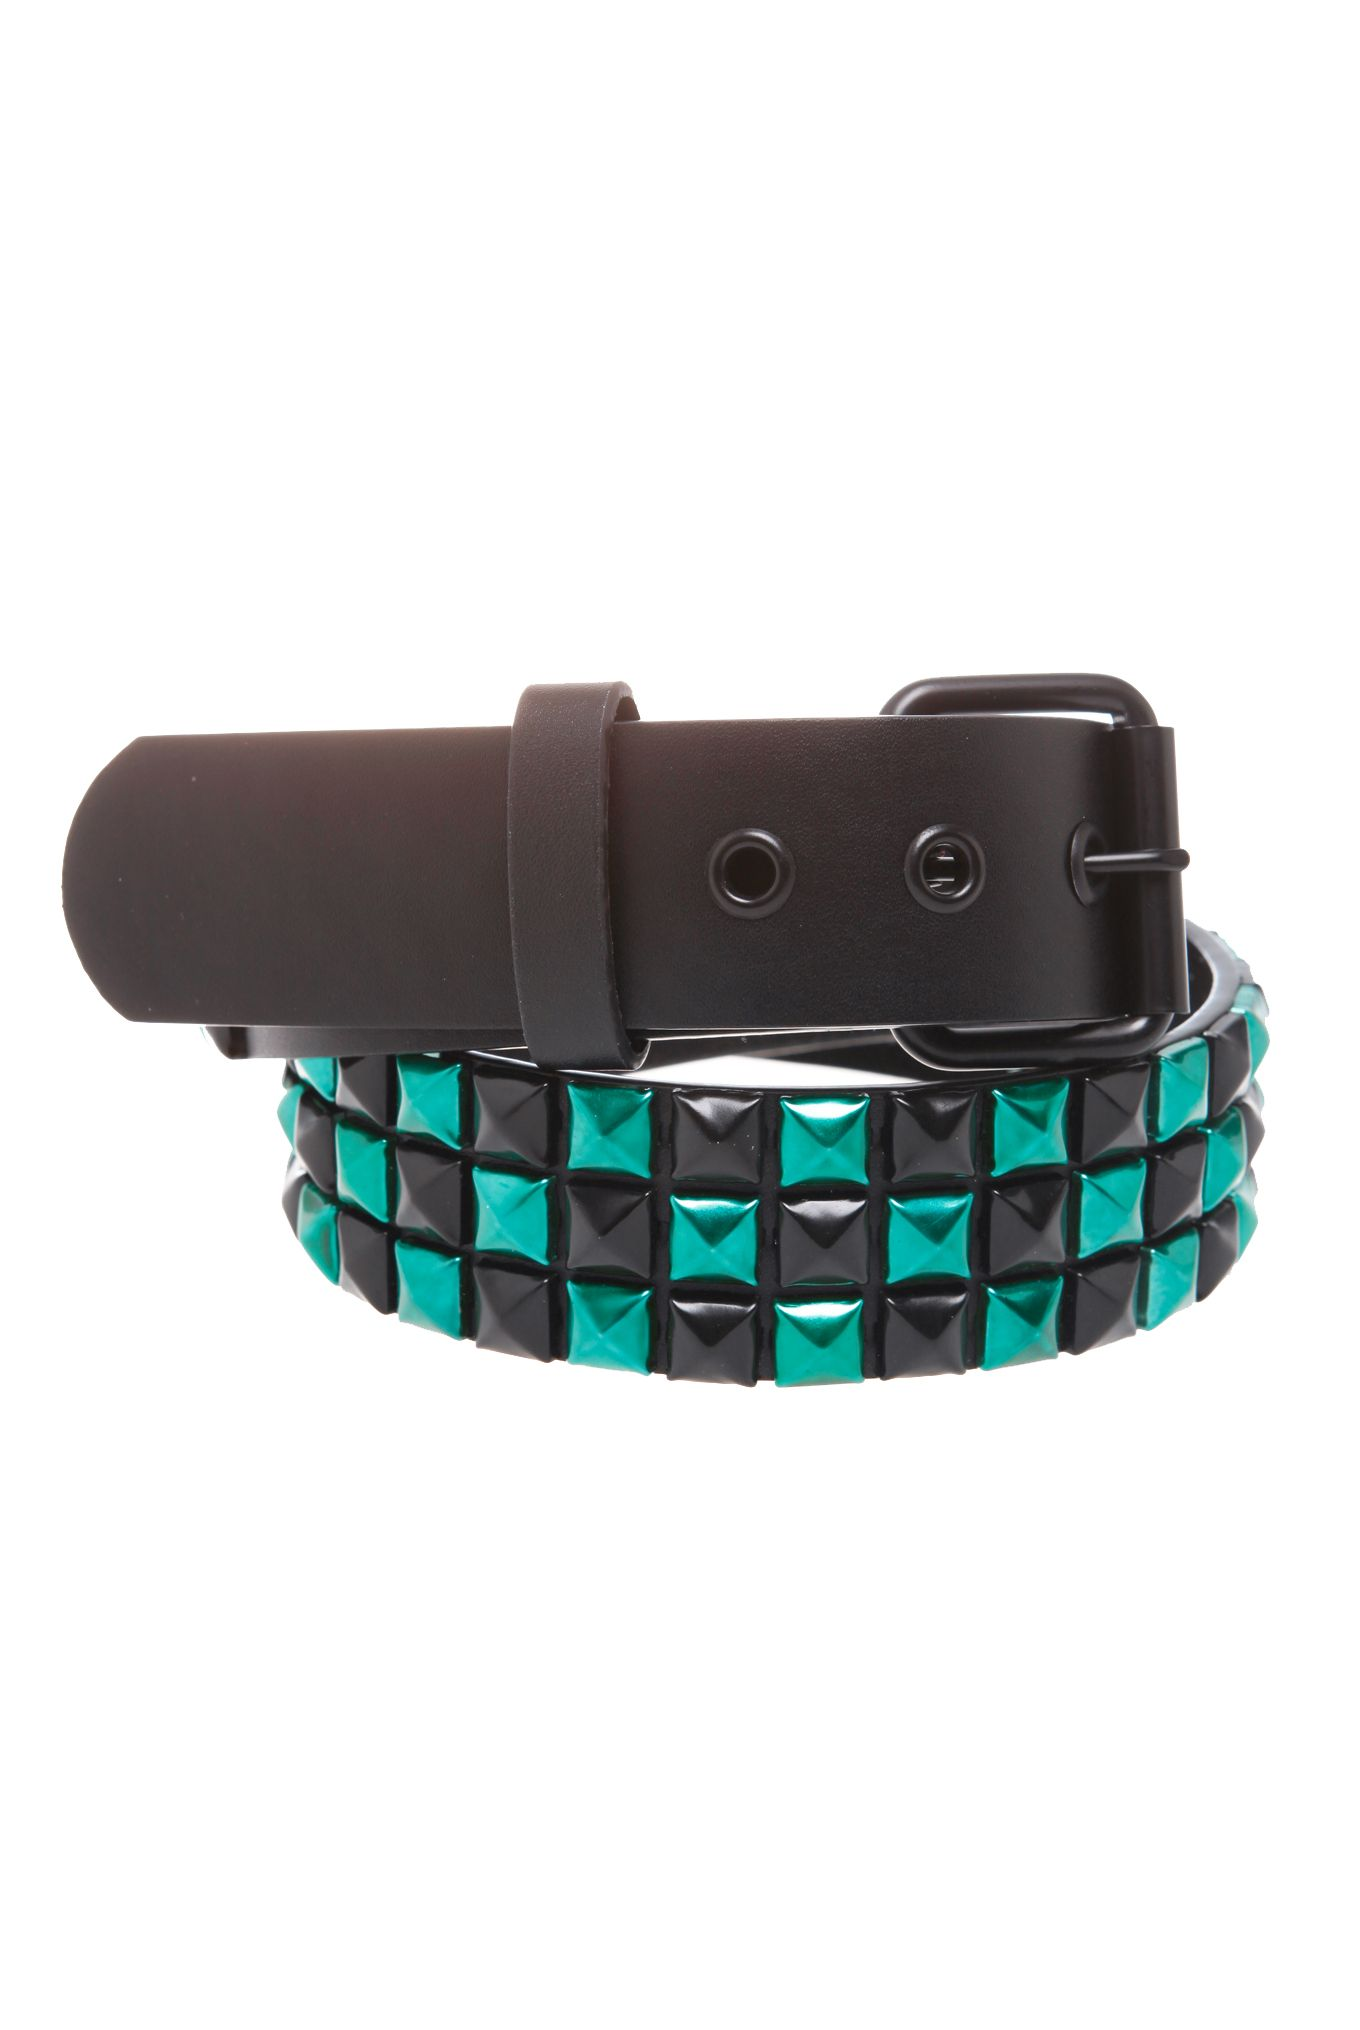 STUDDED FAUX LEATHER BELT MENS REMOVABLE BUCKLE PYRAMID CHEKERED STUDS BLUE